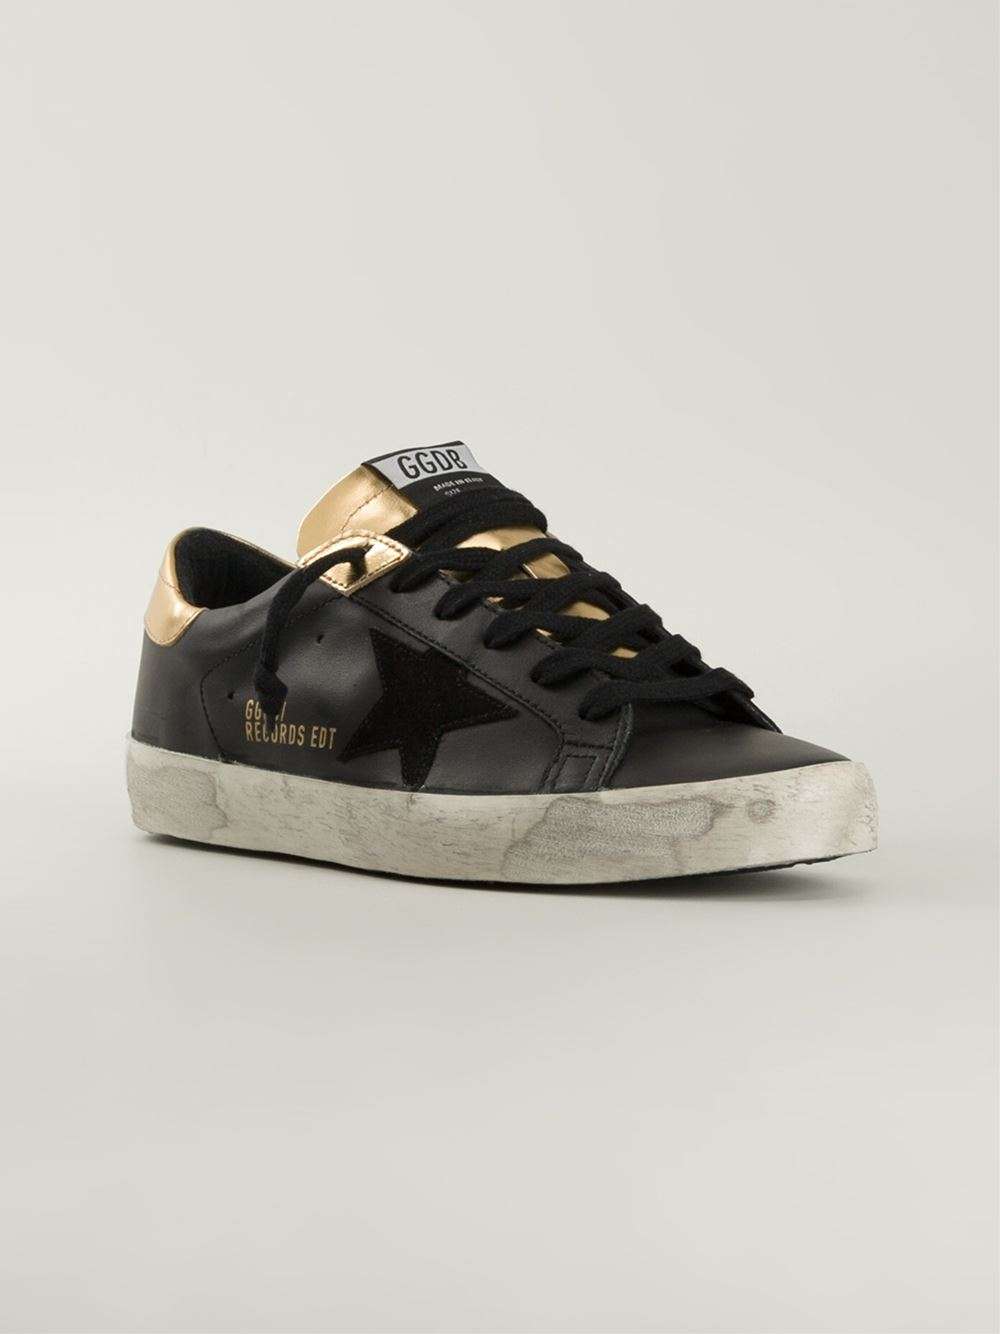 lyst golden goose deluxe brand 39 superstar records edition 39 sneakers in black. Black Bedroom Furniture Sets. Home Design Ideas